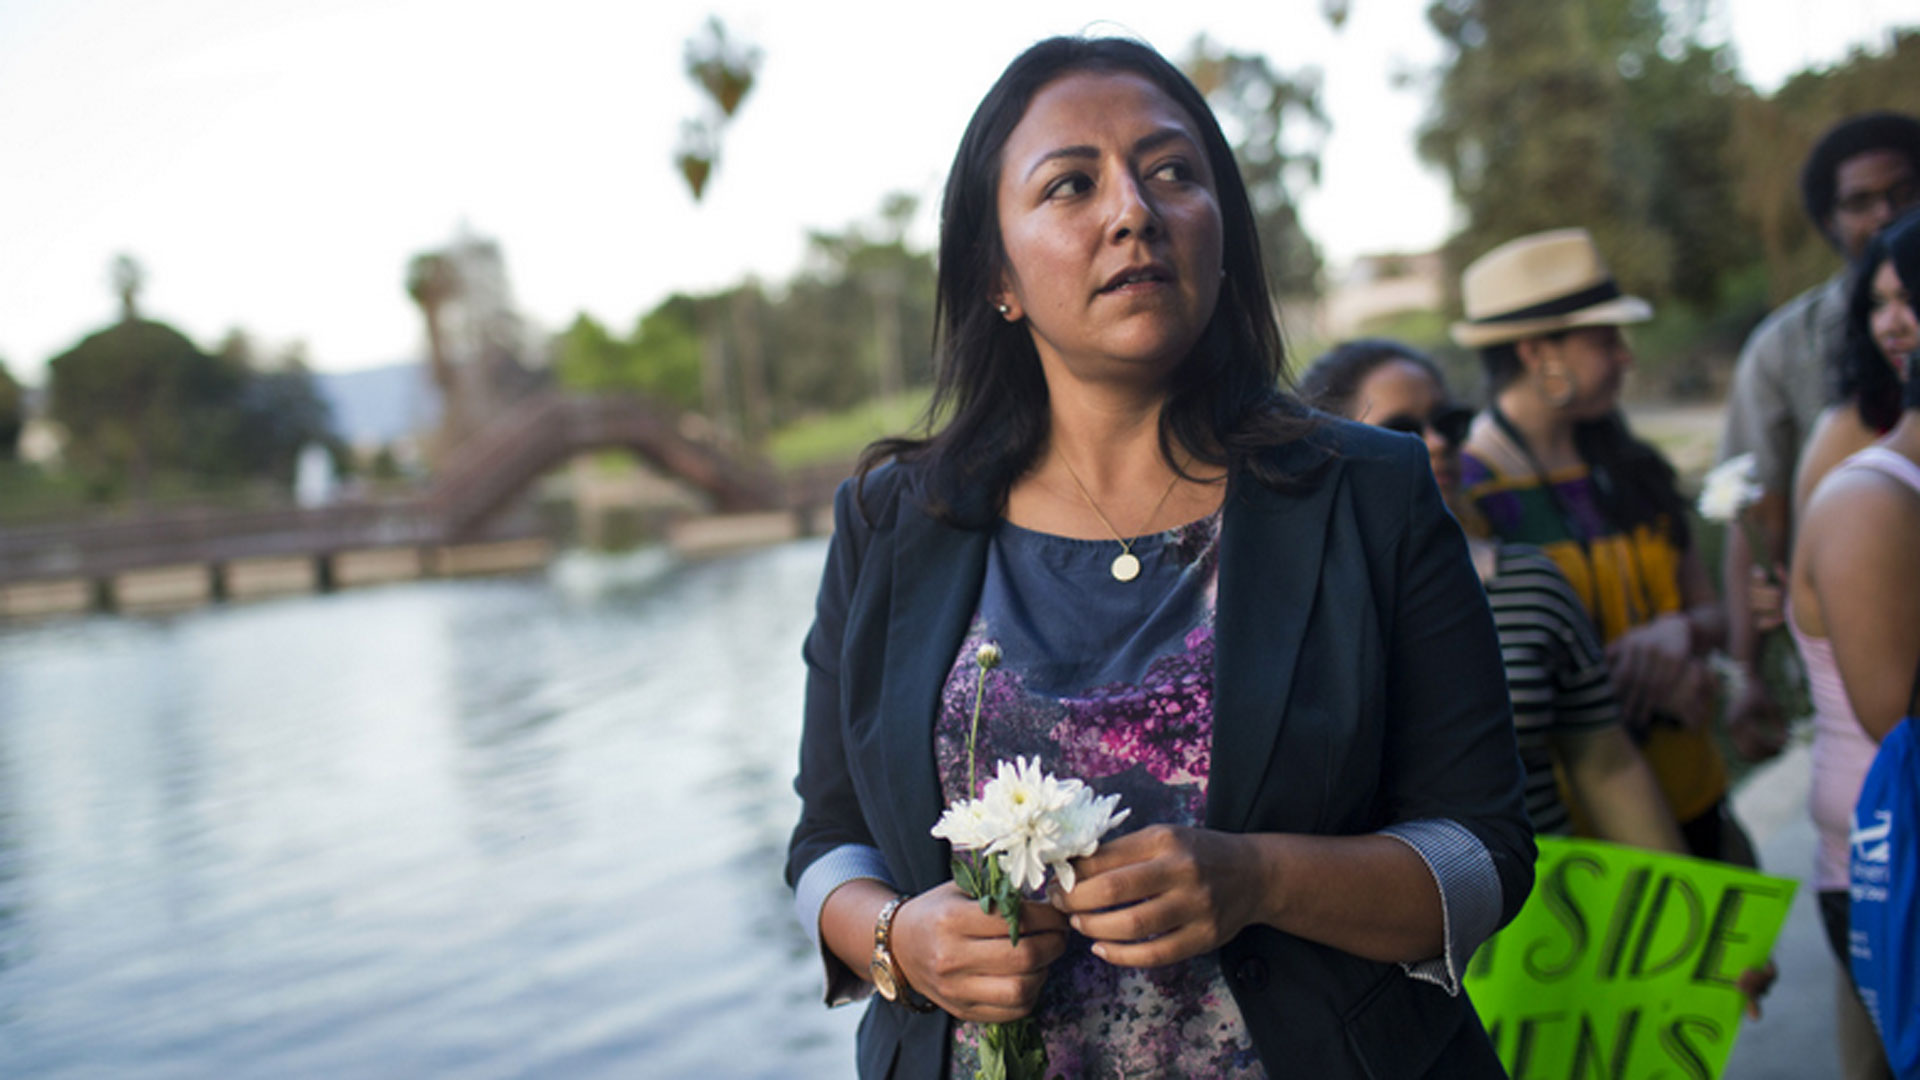 Raquel Román leads a memorial for Lorenza Arellano on Friday, March 13, 2015 at Hollenbeck Park in Boyle Heights. Roman, director of the Guadalupe Homeless Project, opened a women's shelter after Arellano, a homeless woman, was found dead in the park's lake in March 2014.